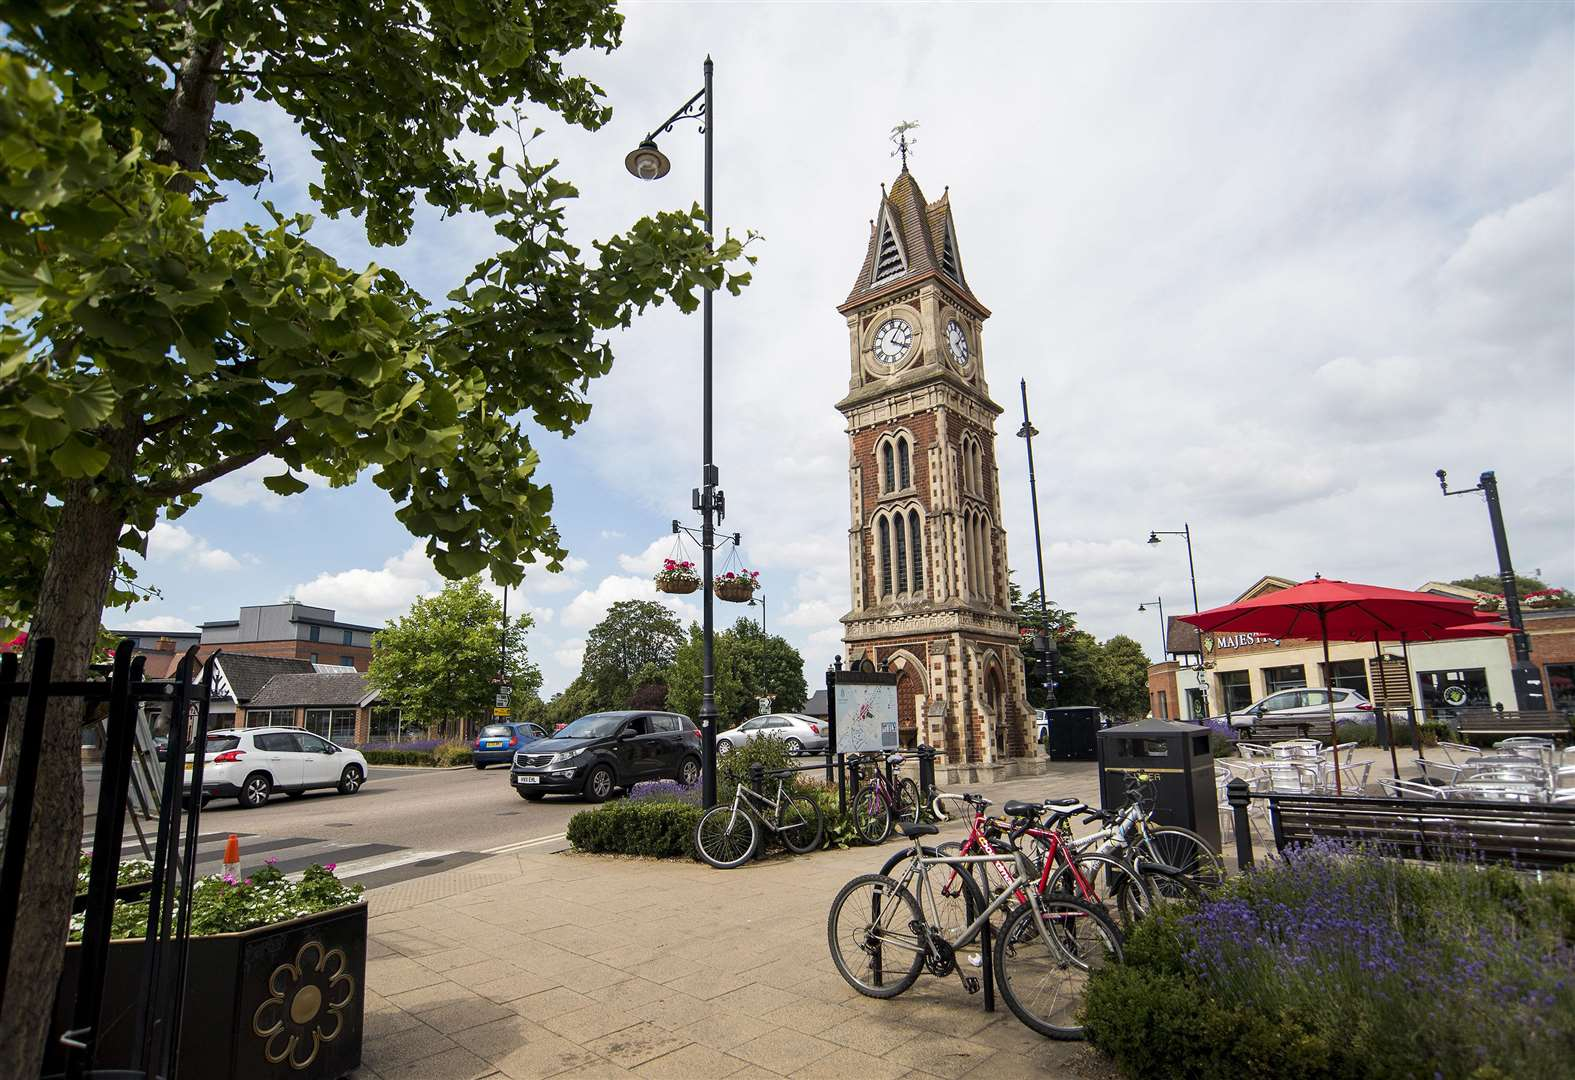 Have your say on the future of Newmarket's High Street